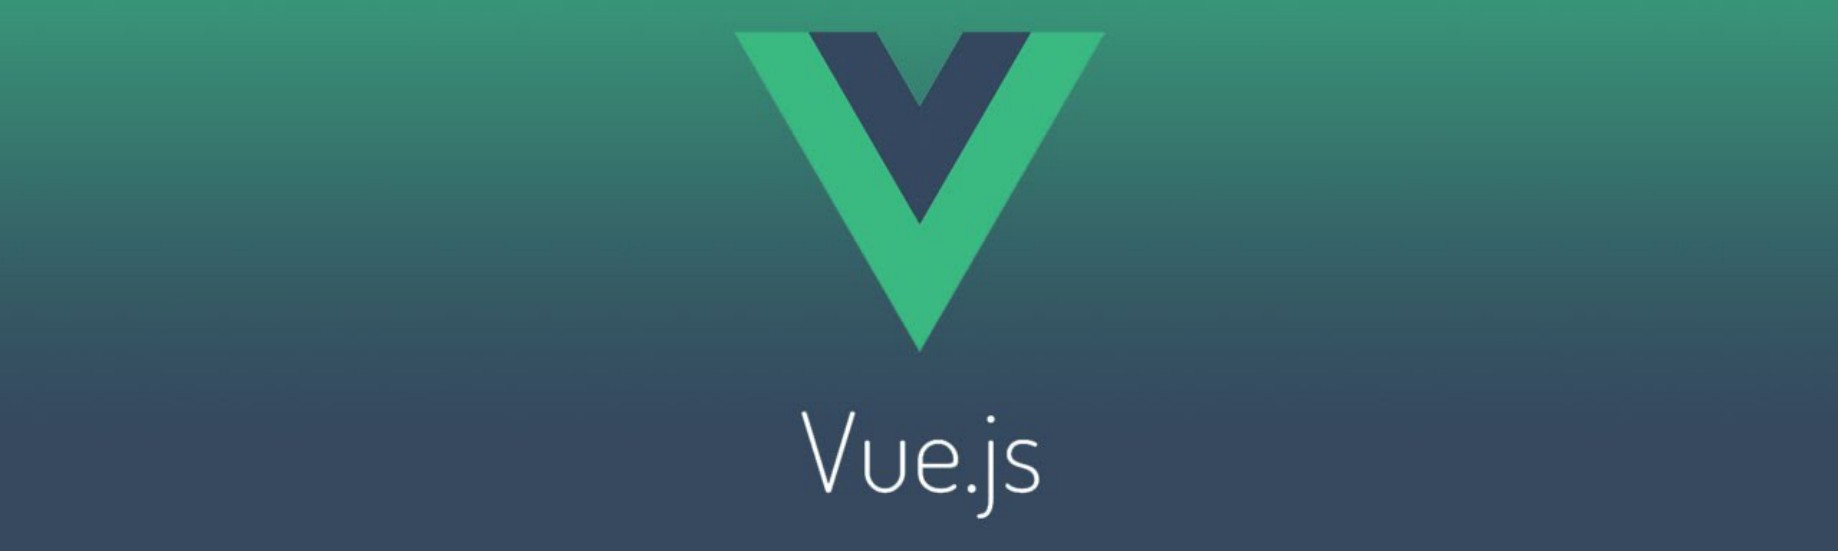 How I built a browser extension with Vue (Part 2